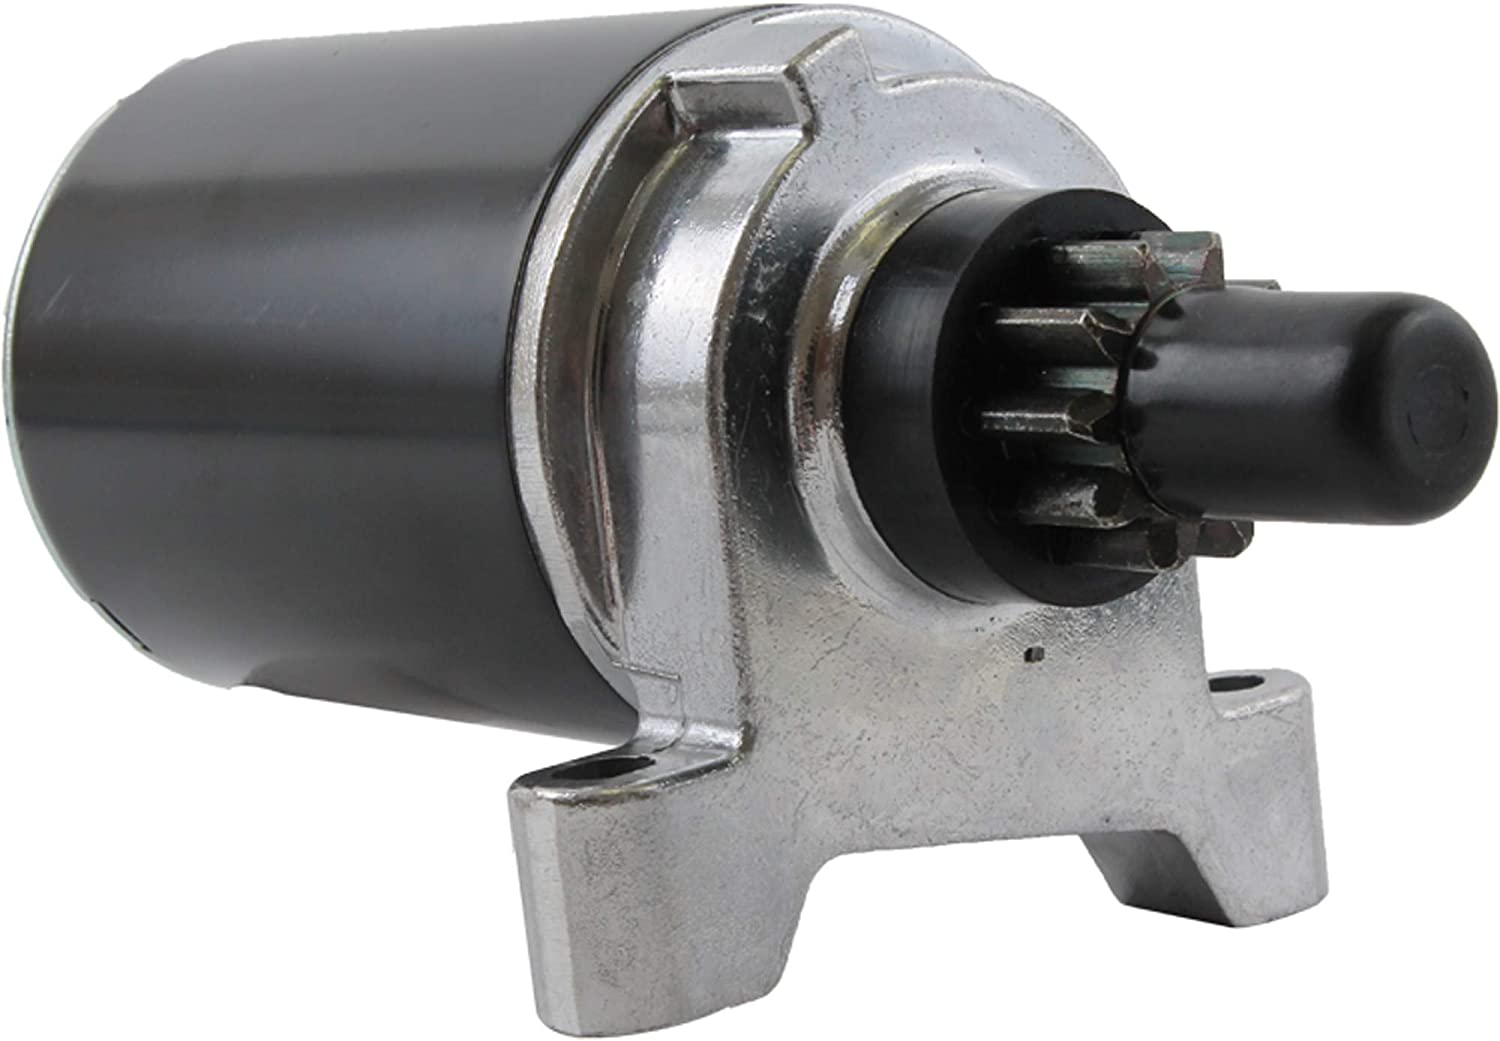 Dedication DB Electrical 410-22017 New Re Compatible Starter Jacksonville Mall with